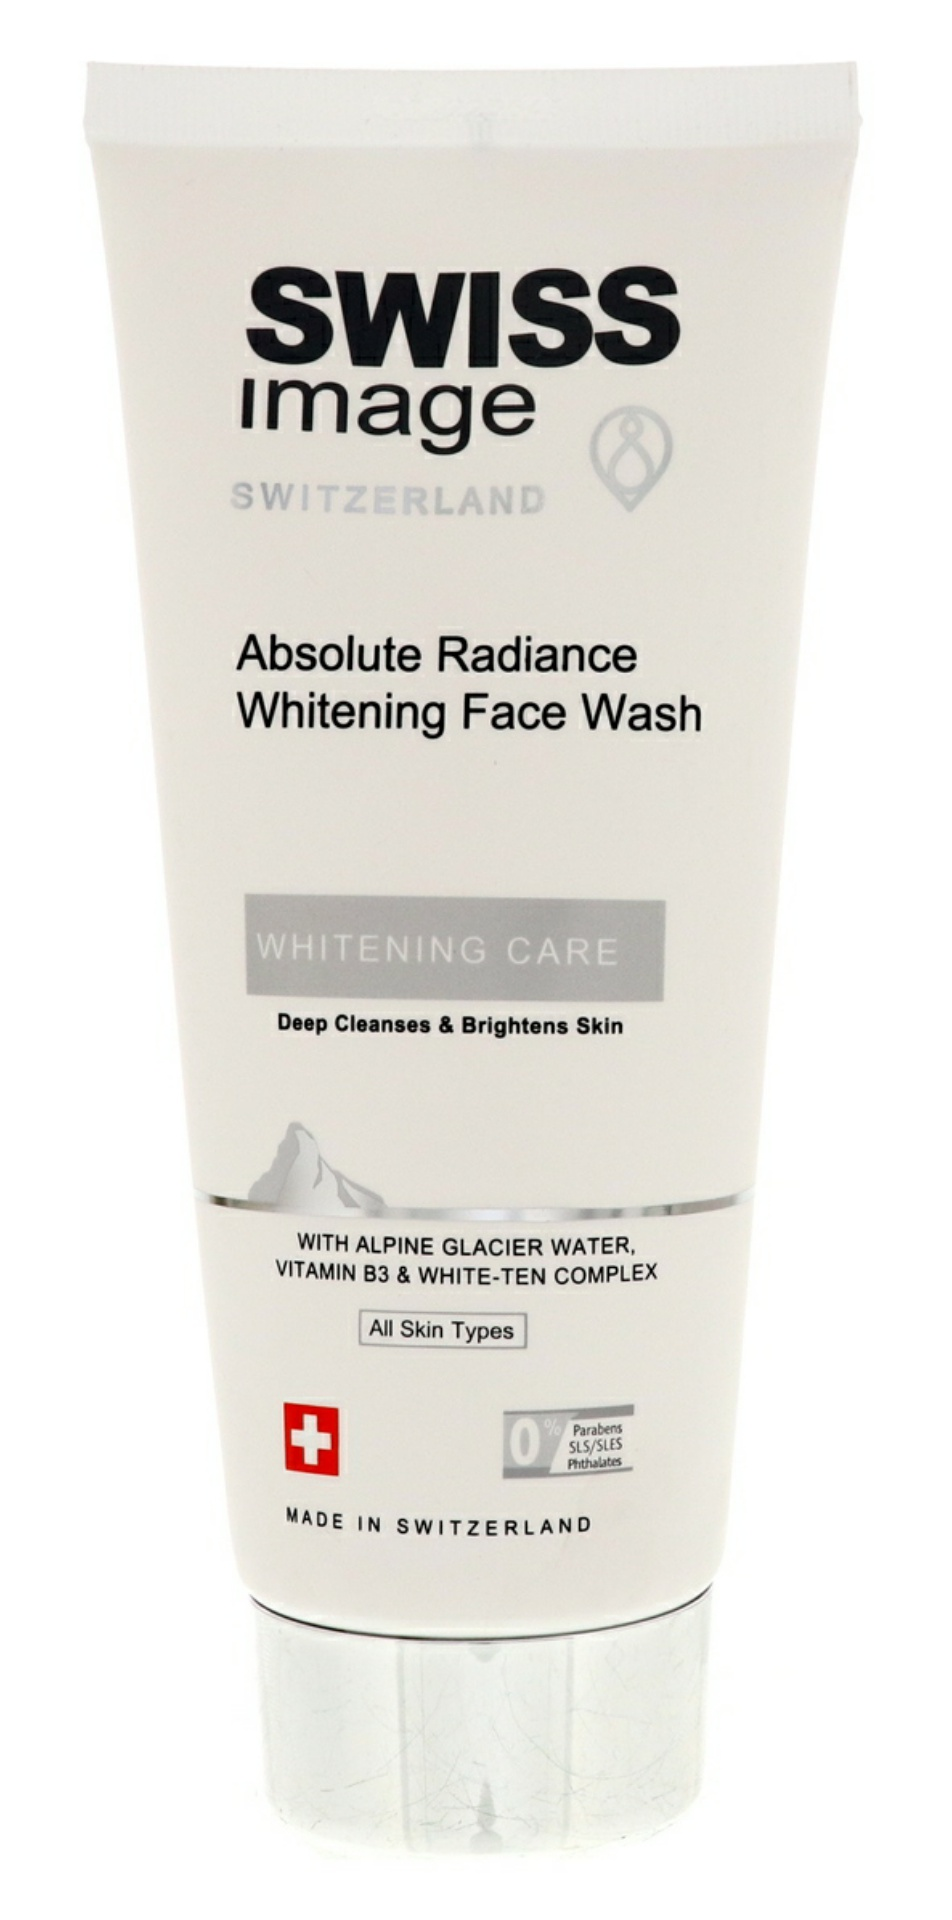 Swiss Image Absolute Radiance Whitening Face Wash